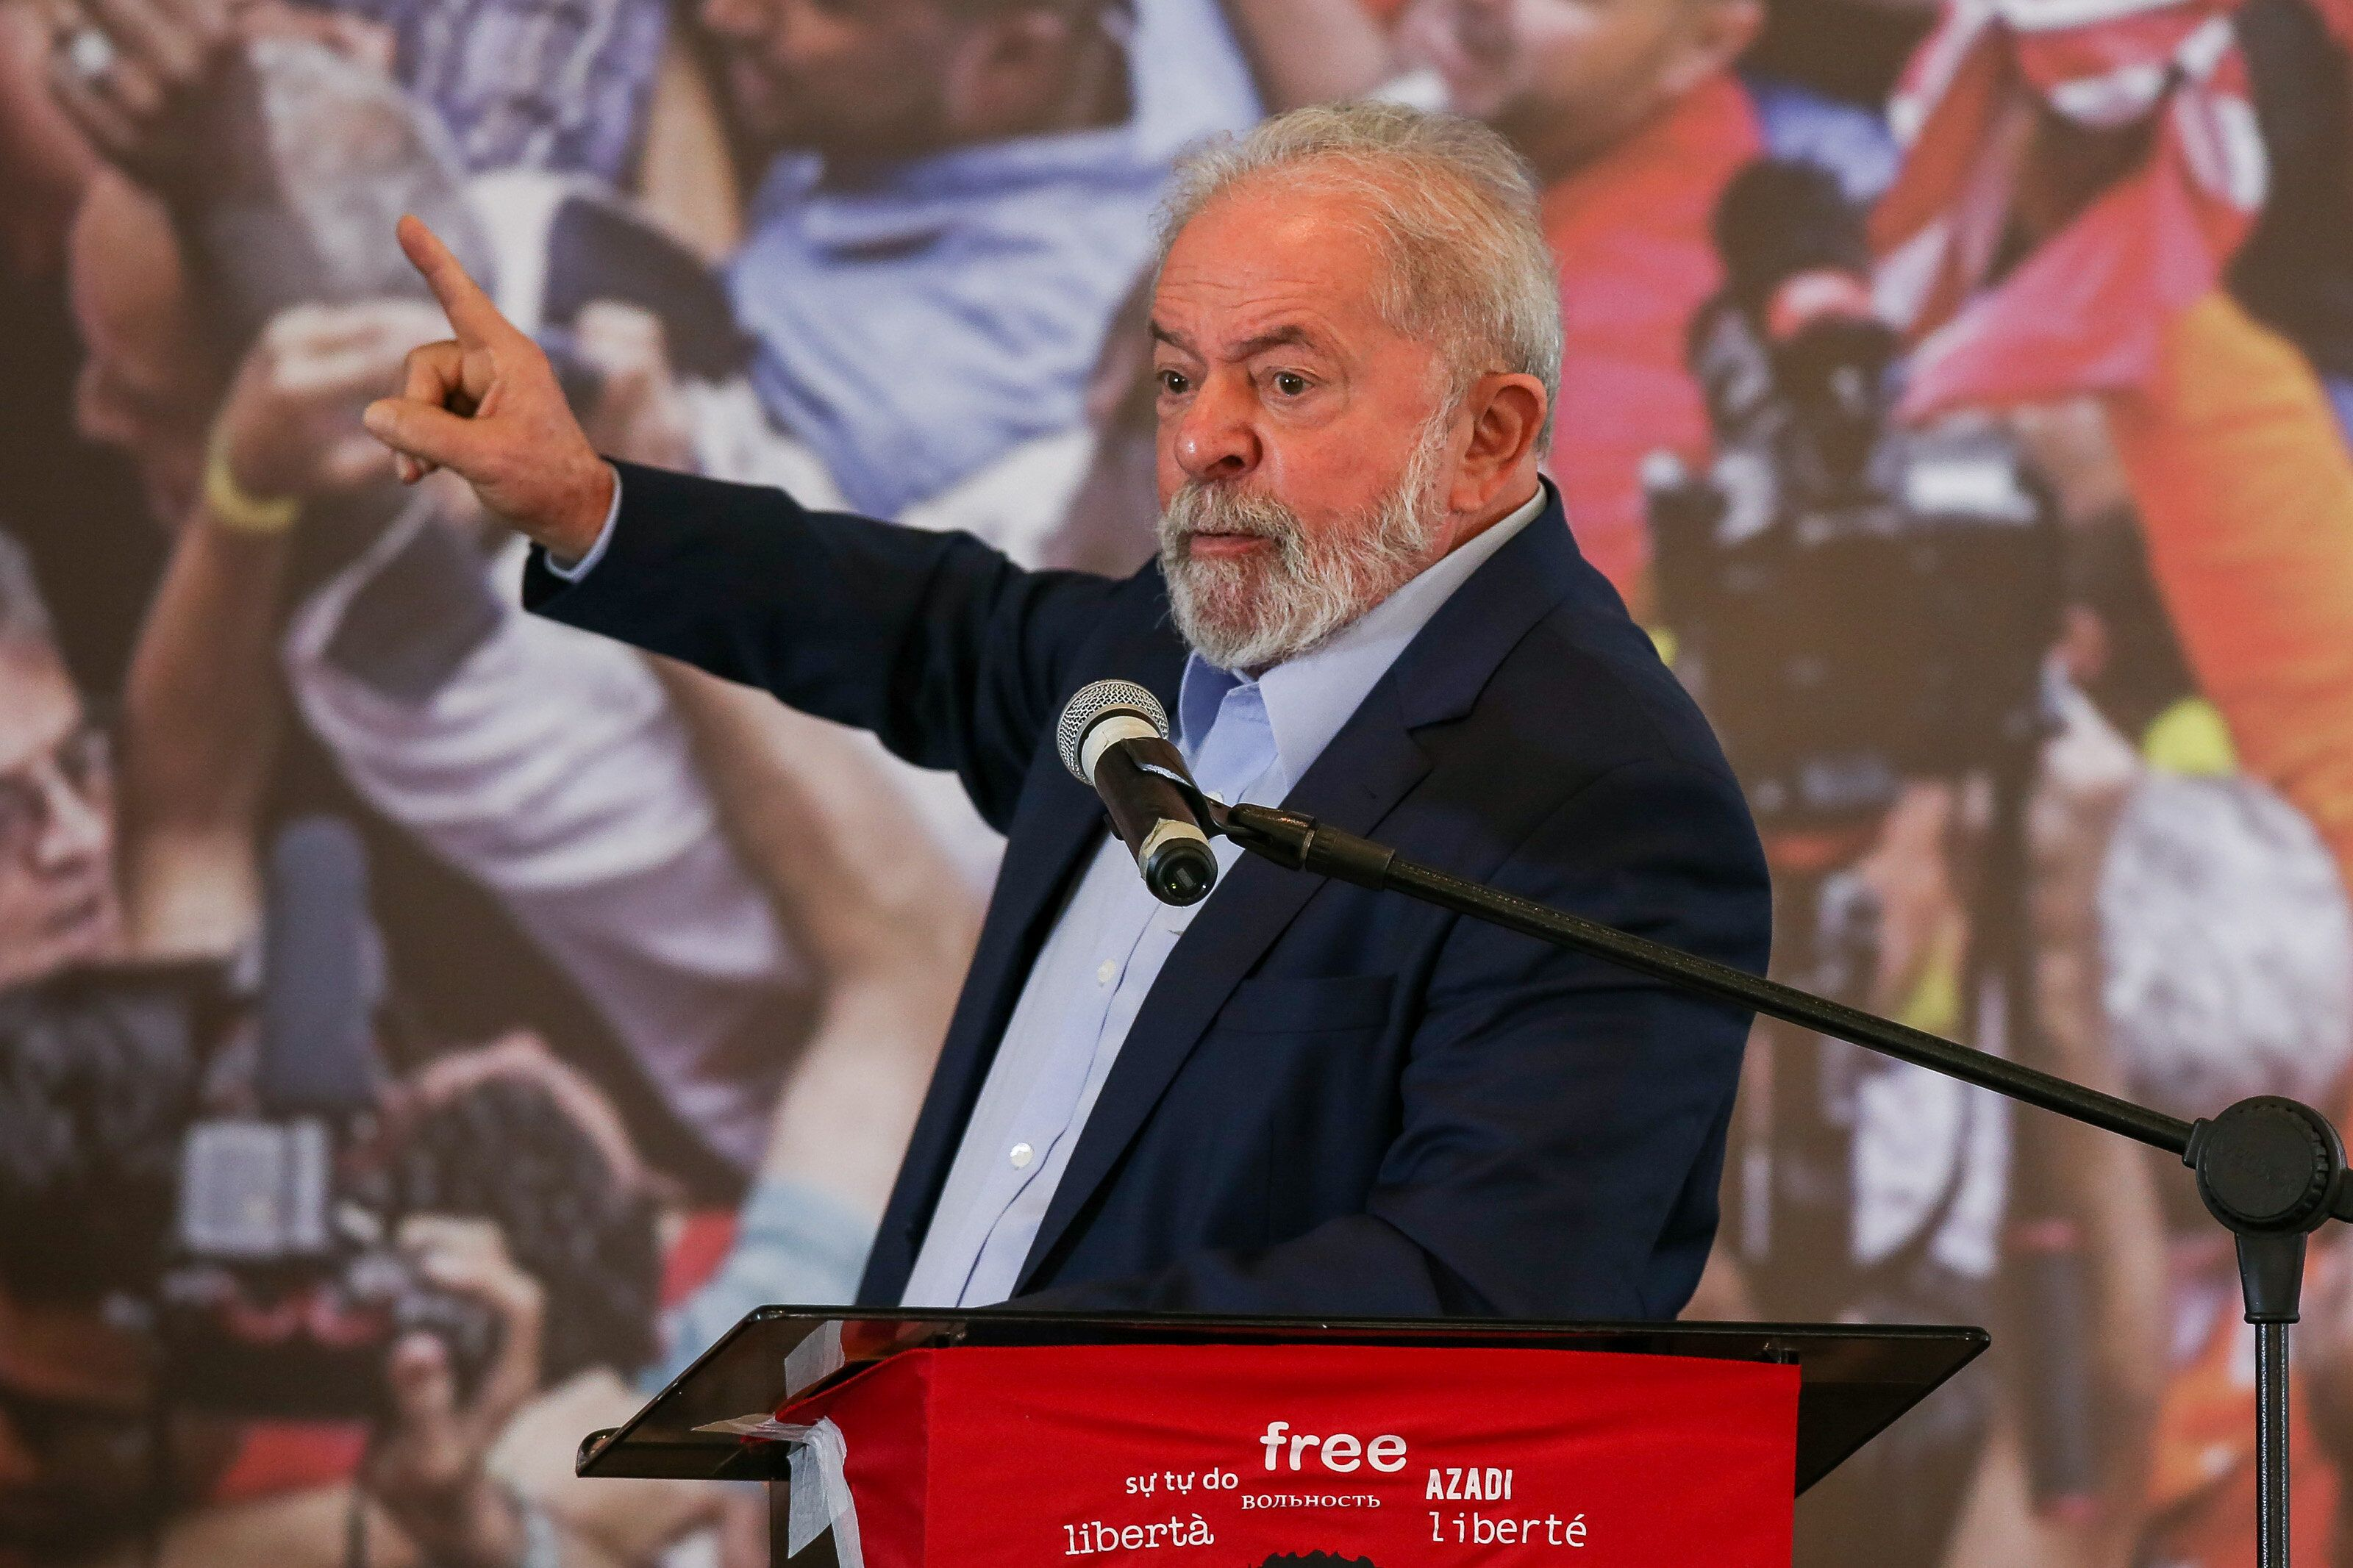 Lula da Silva, a leftist former president of Brazil, has all but formalized his candidacy against Bolsonaro in next year's el